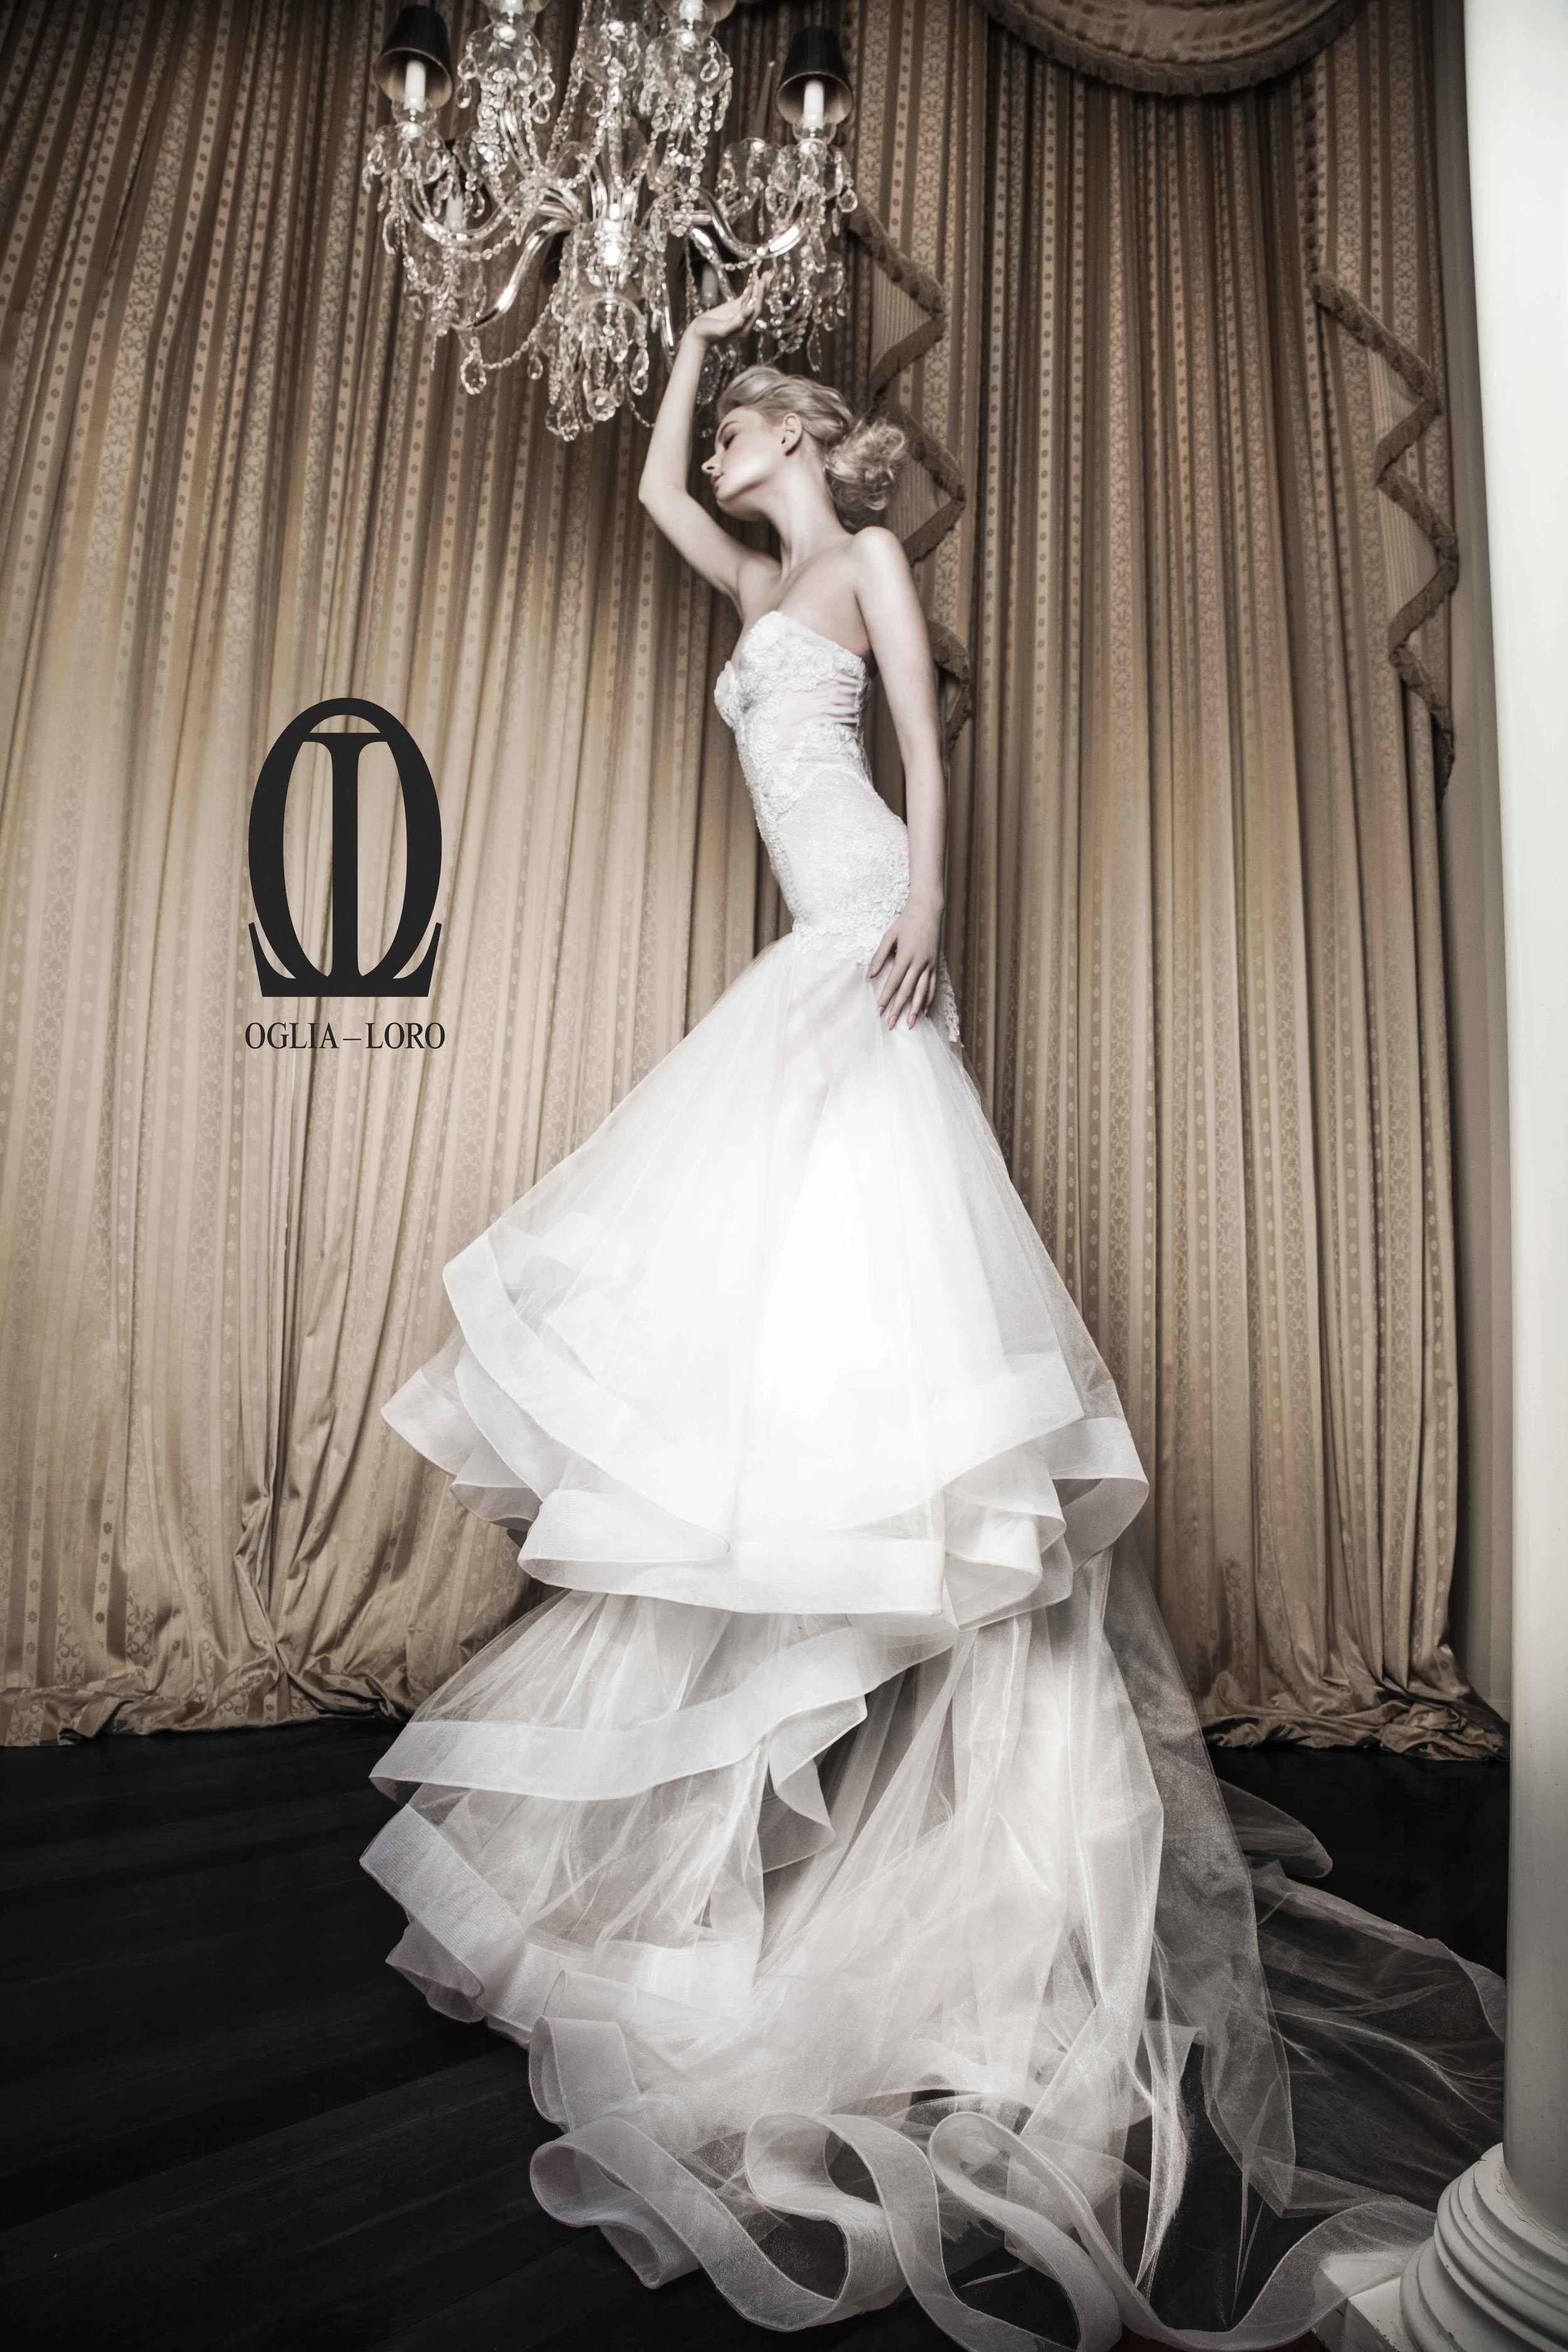 Oglia Loro Melbourne wedding dress